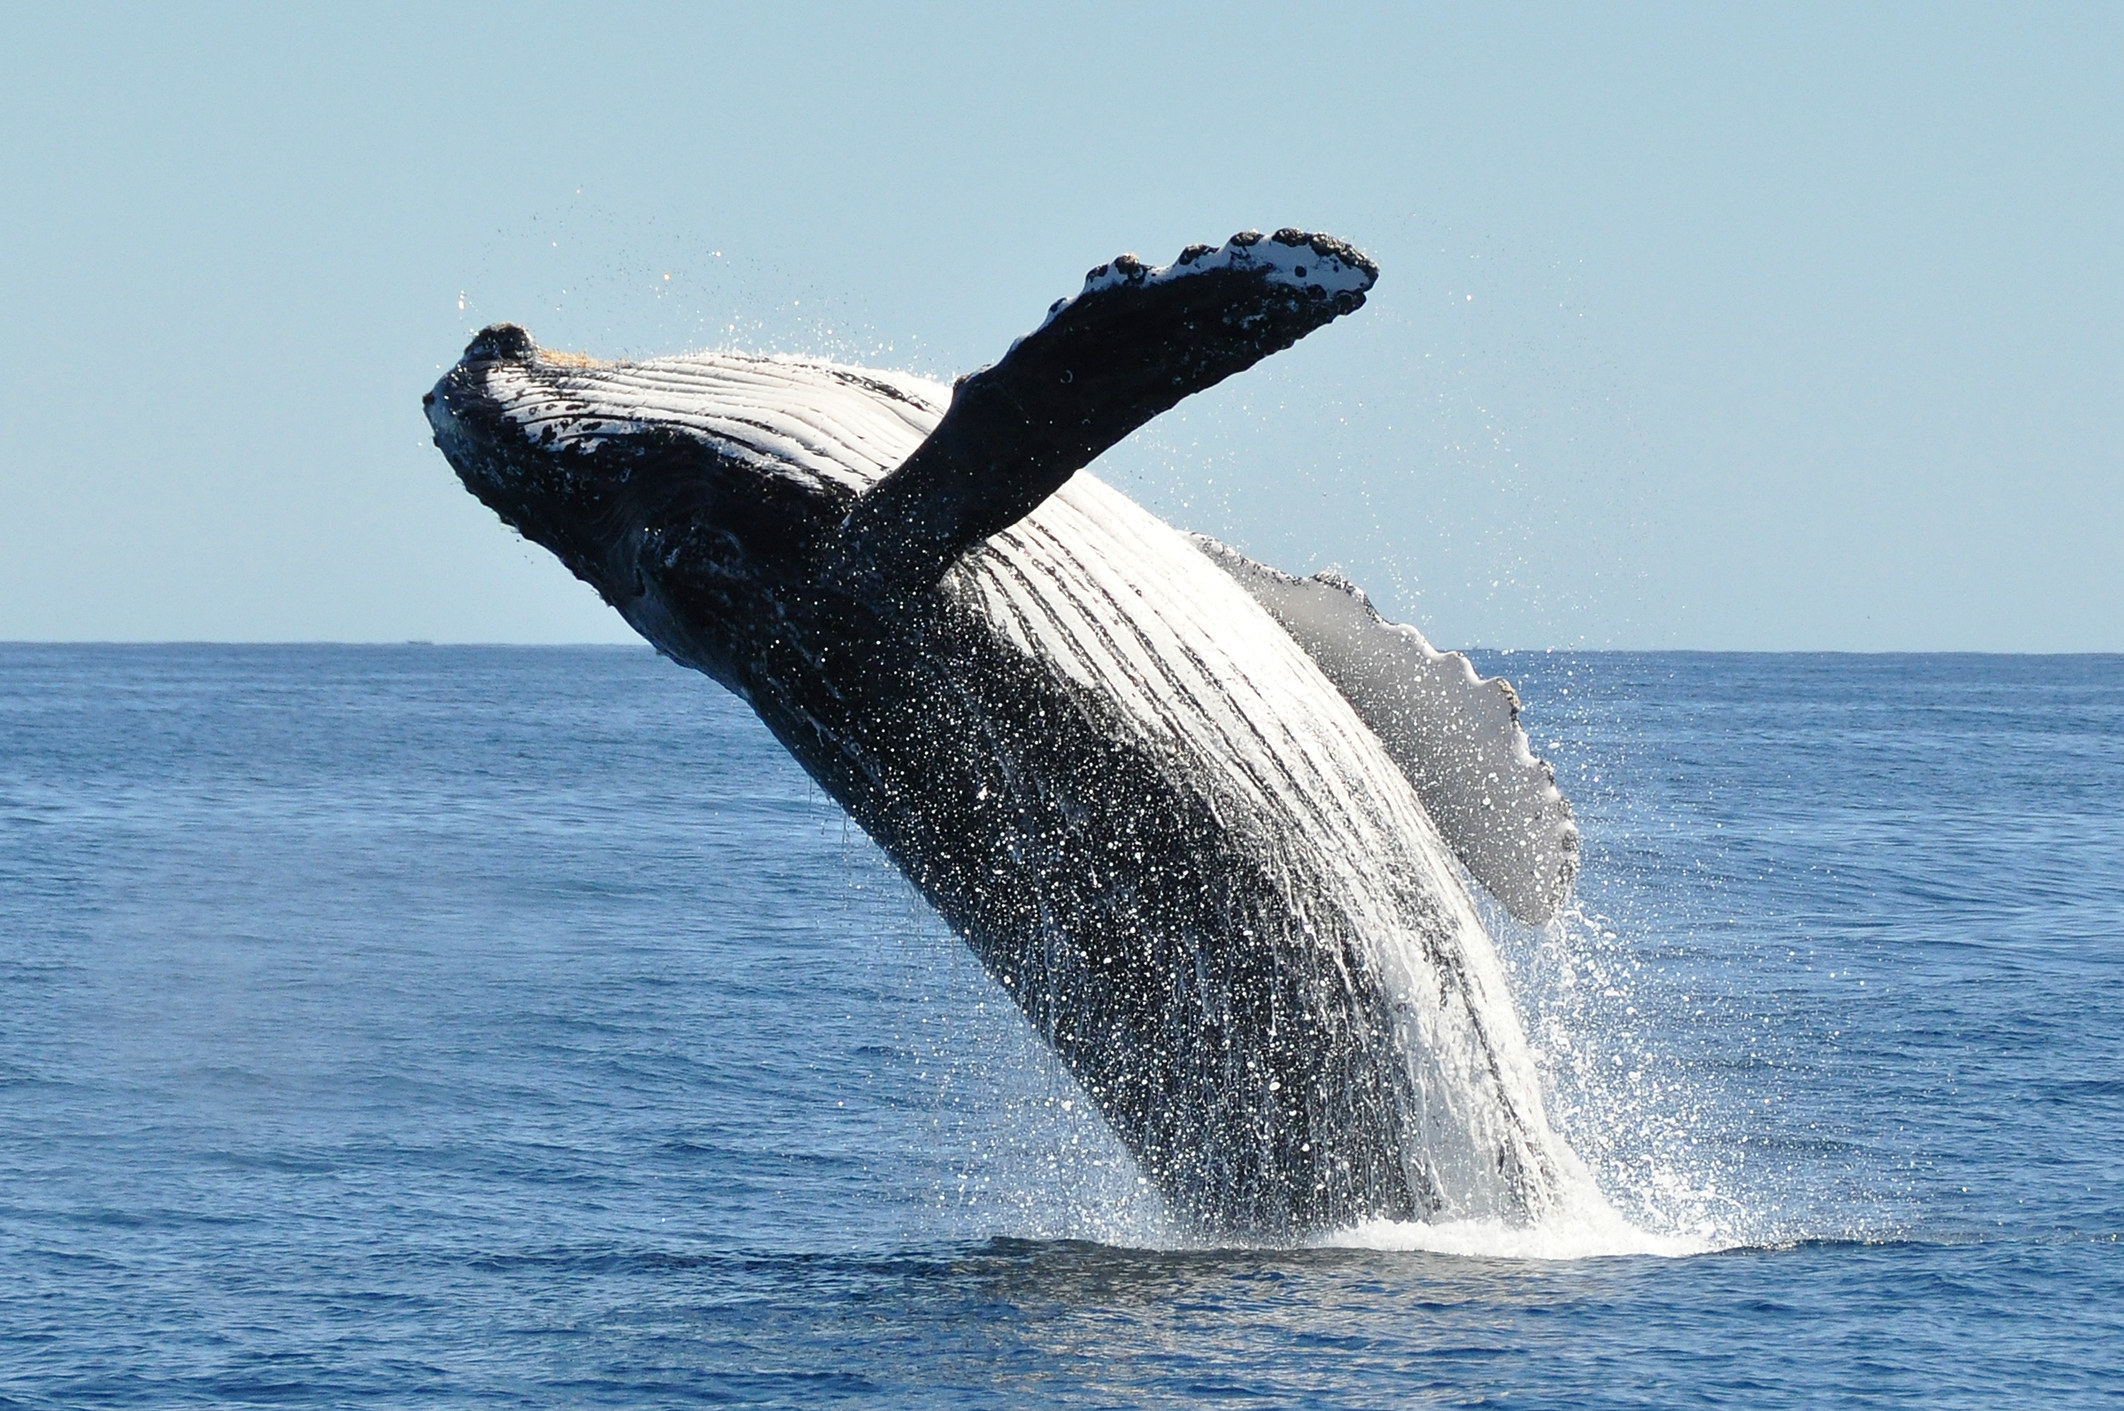 A whale leaping out of the sea